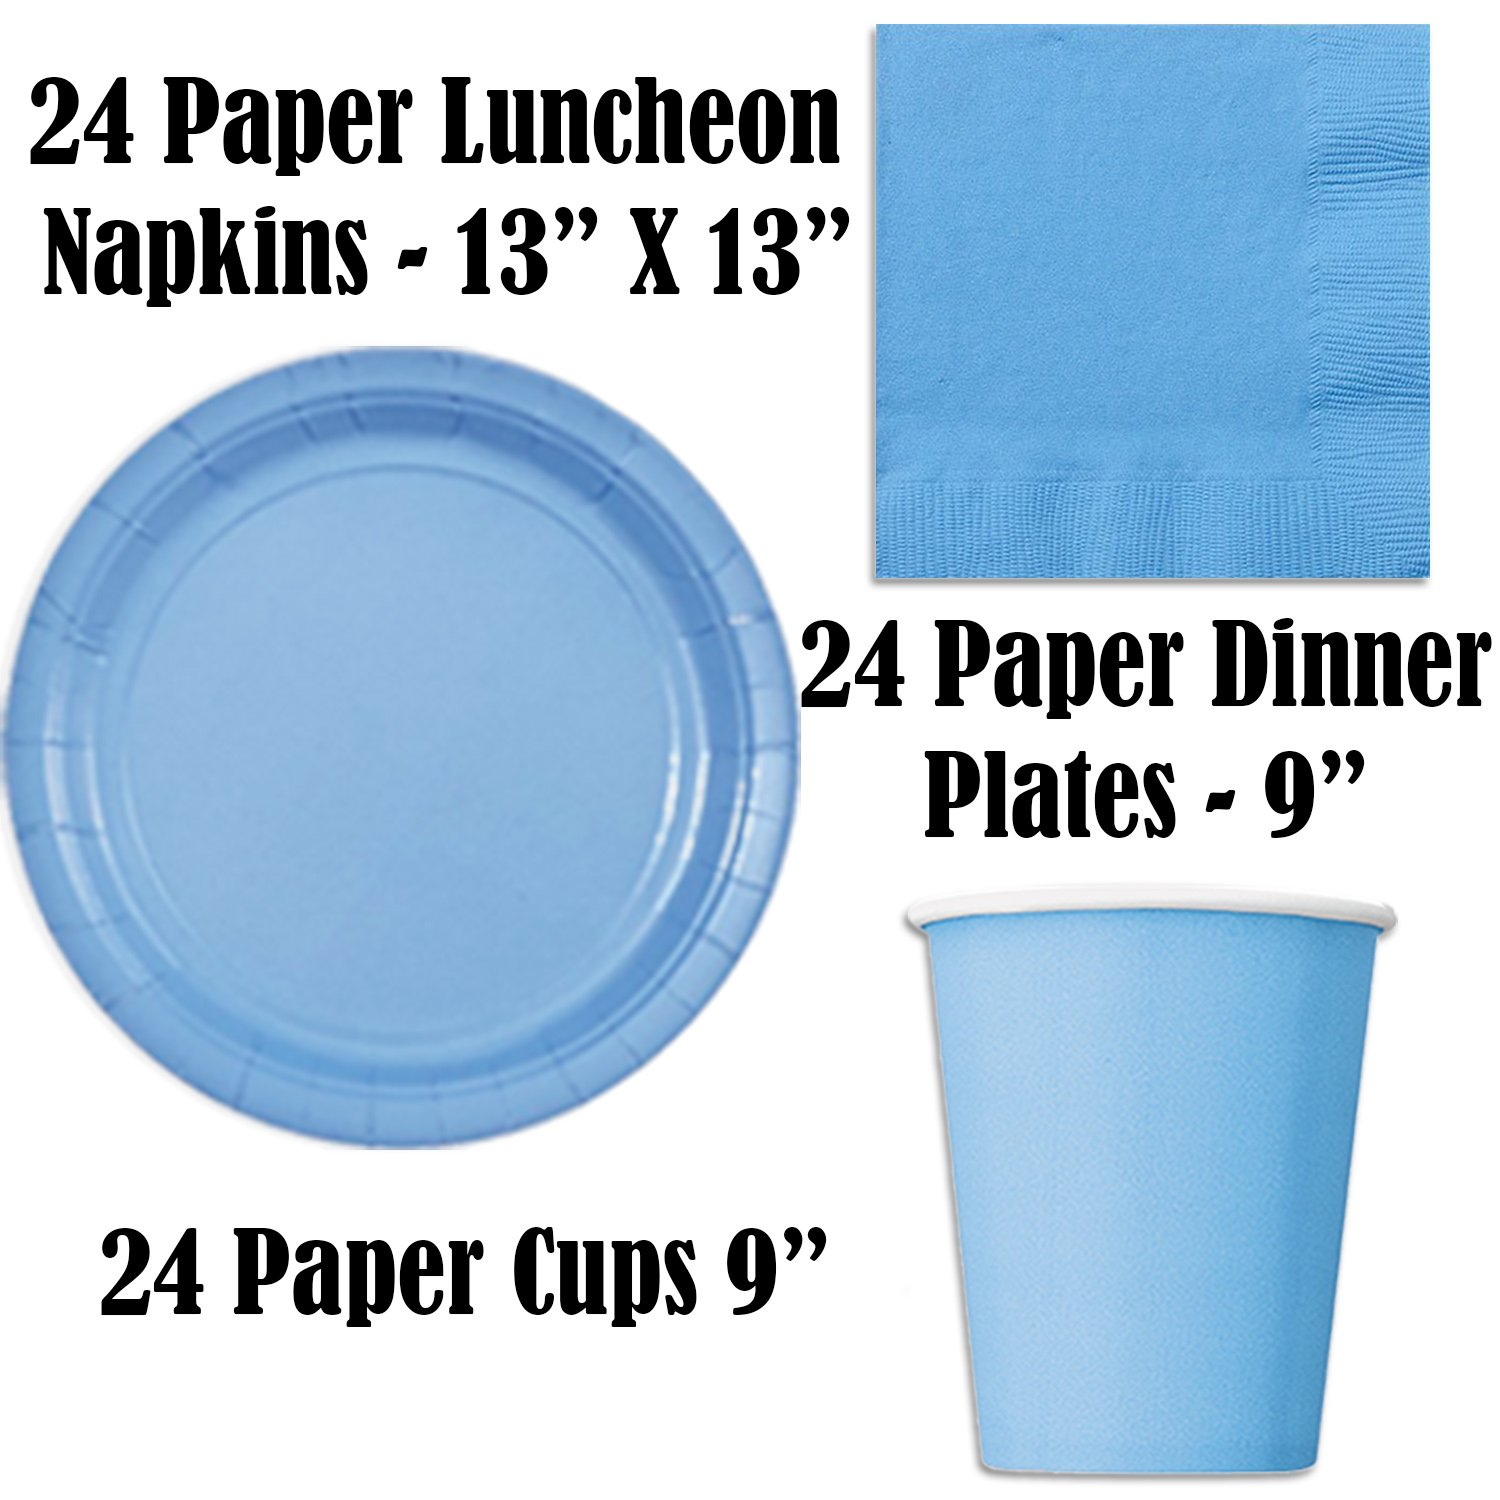 Paper Tableware Set for 24 - Light Blue & Blue - Dinner and Dessert Plates, Cups, Napkins, Cutlery (Spoons, Forks, Knives), and Tablecloths - Full Two-Tone Party Supplies Pack by HeroFiber (Image #2)